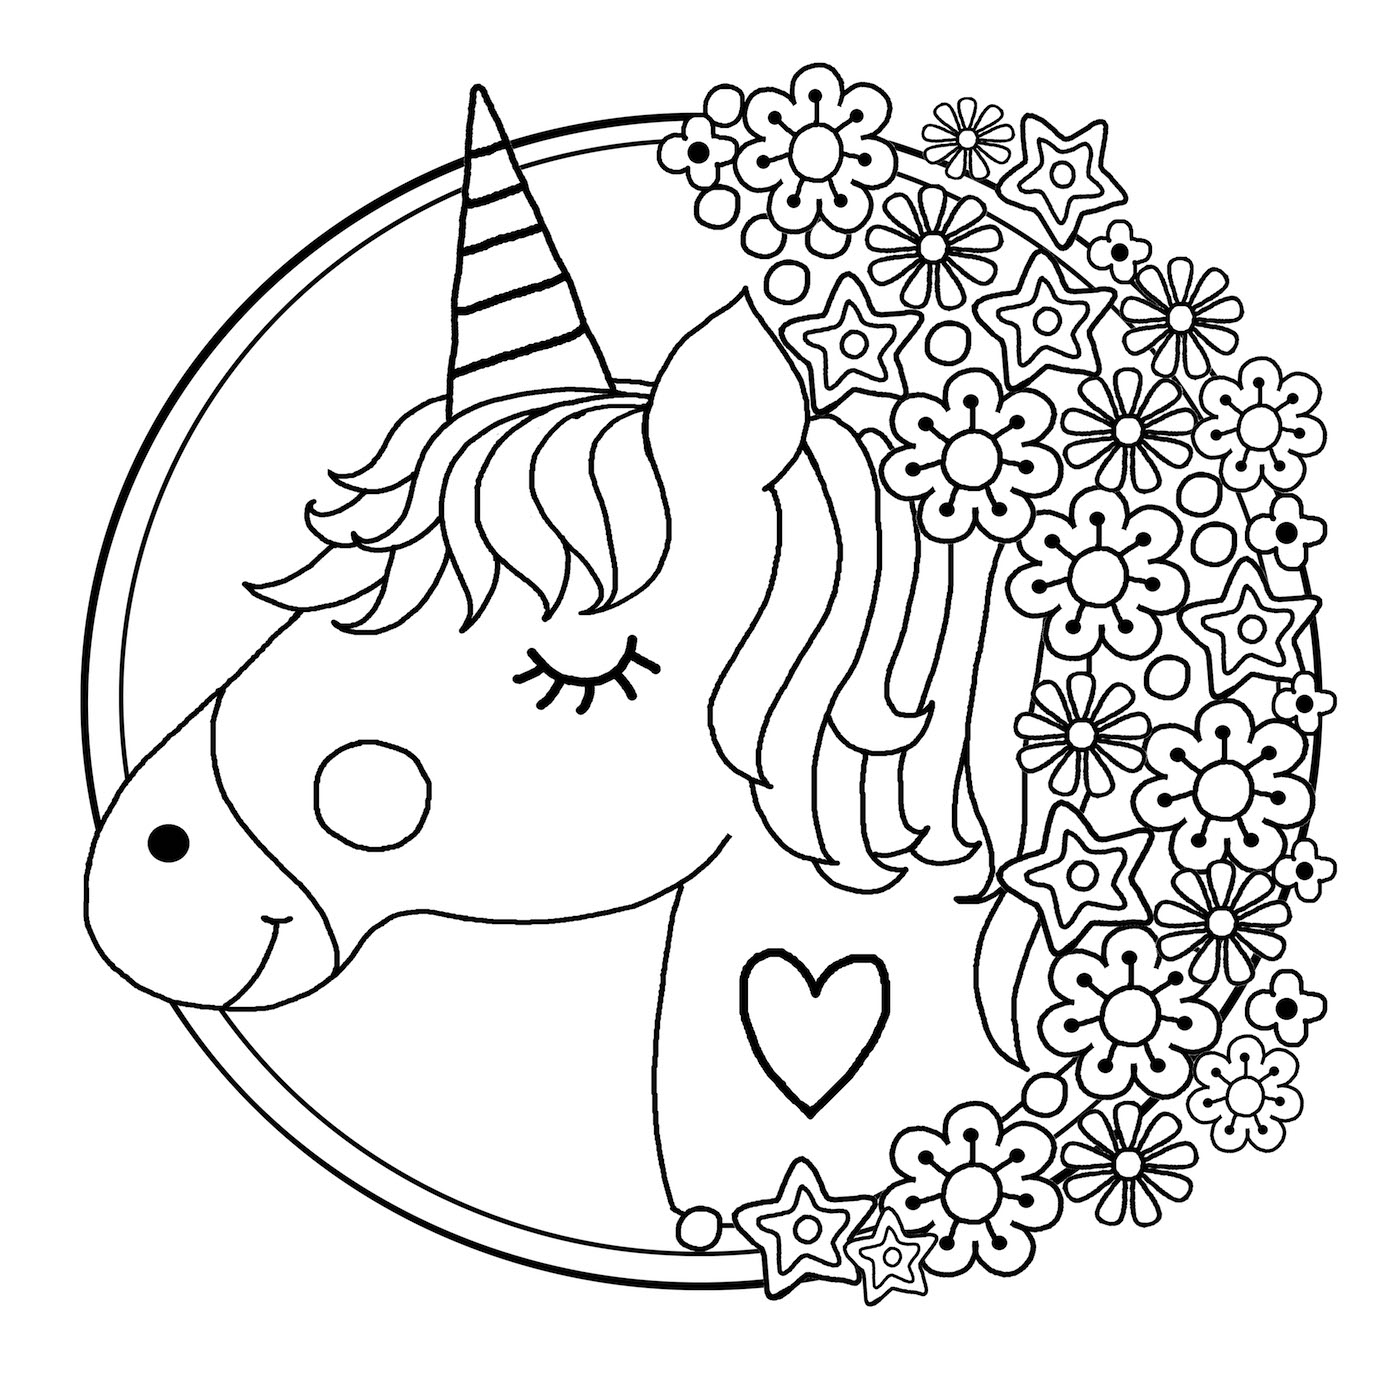 coloring pictures of unicorns unicorn coloring pages free download on clipartmag of unicorns coloring pictures